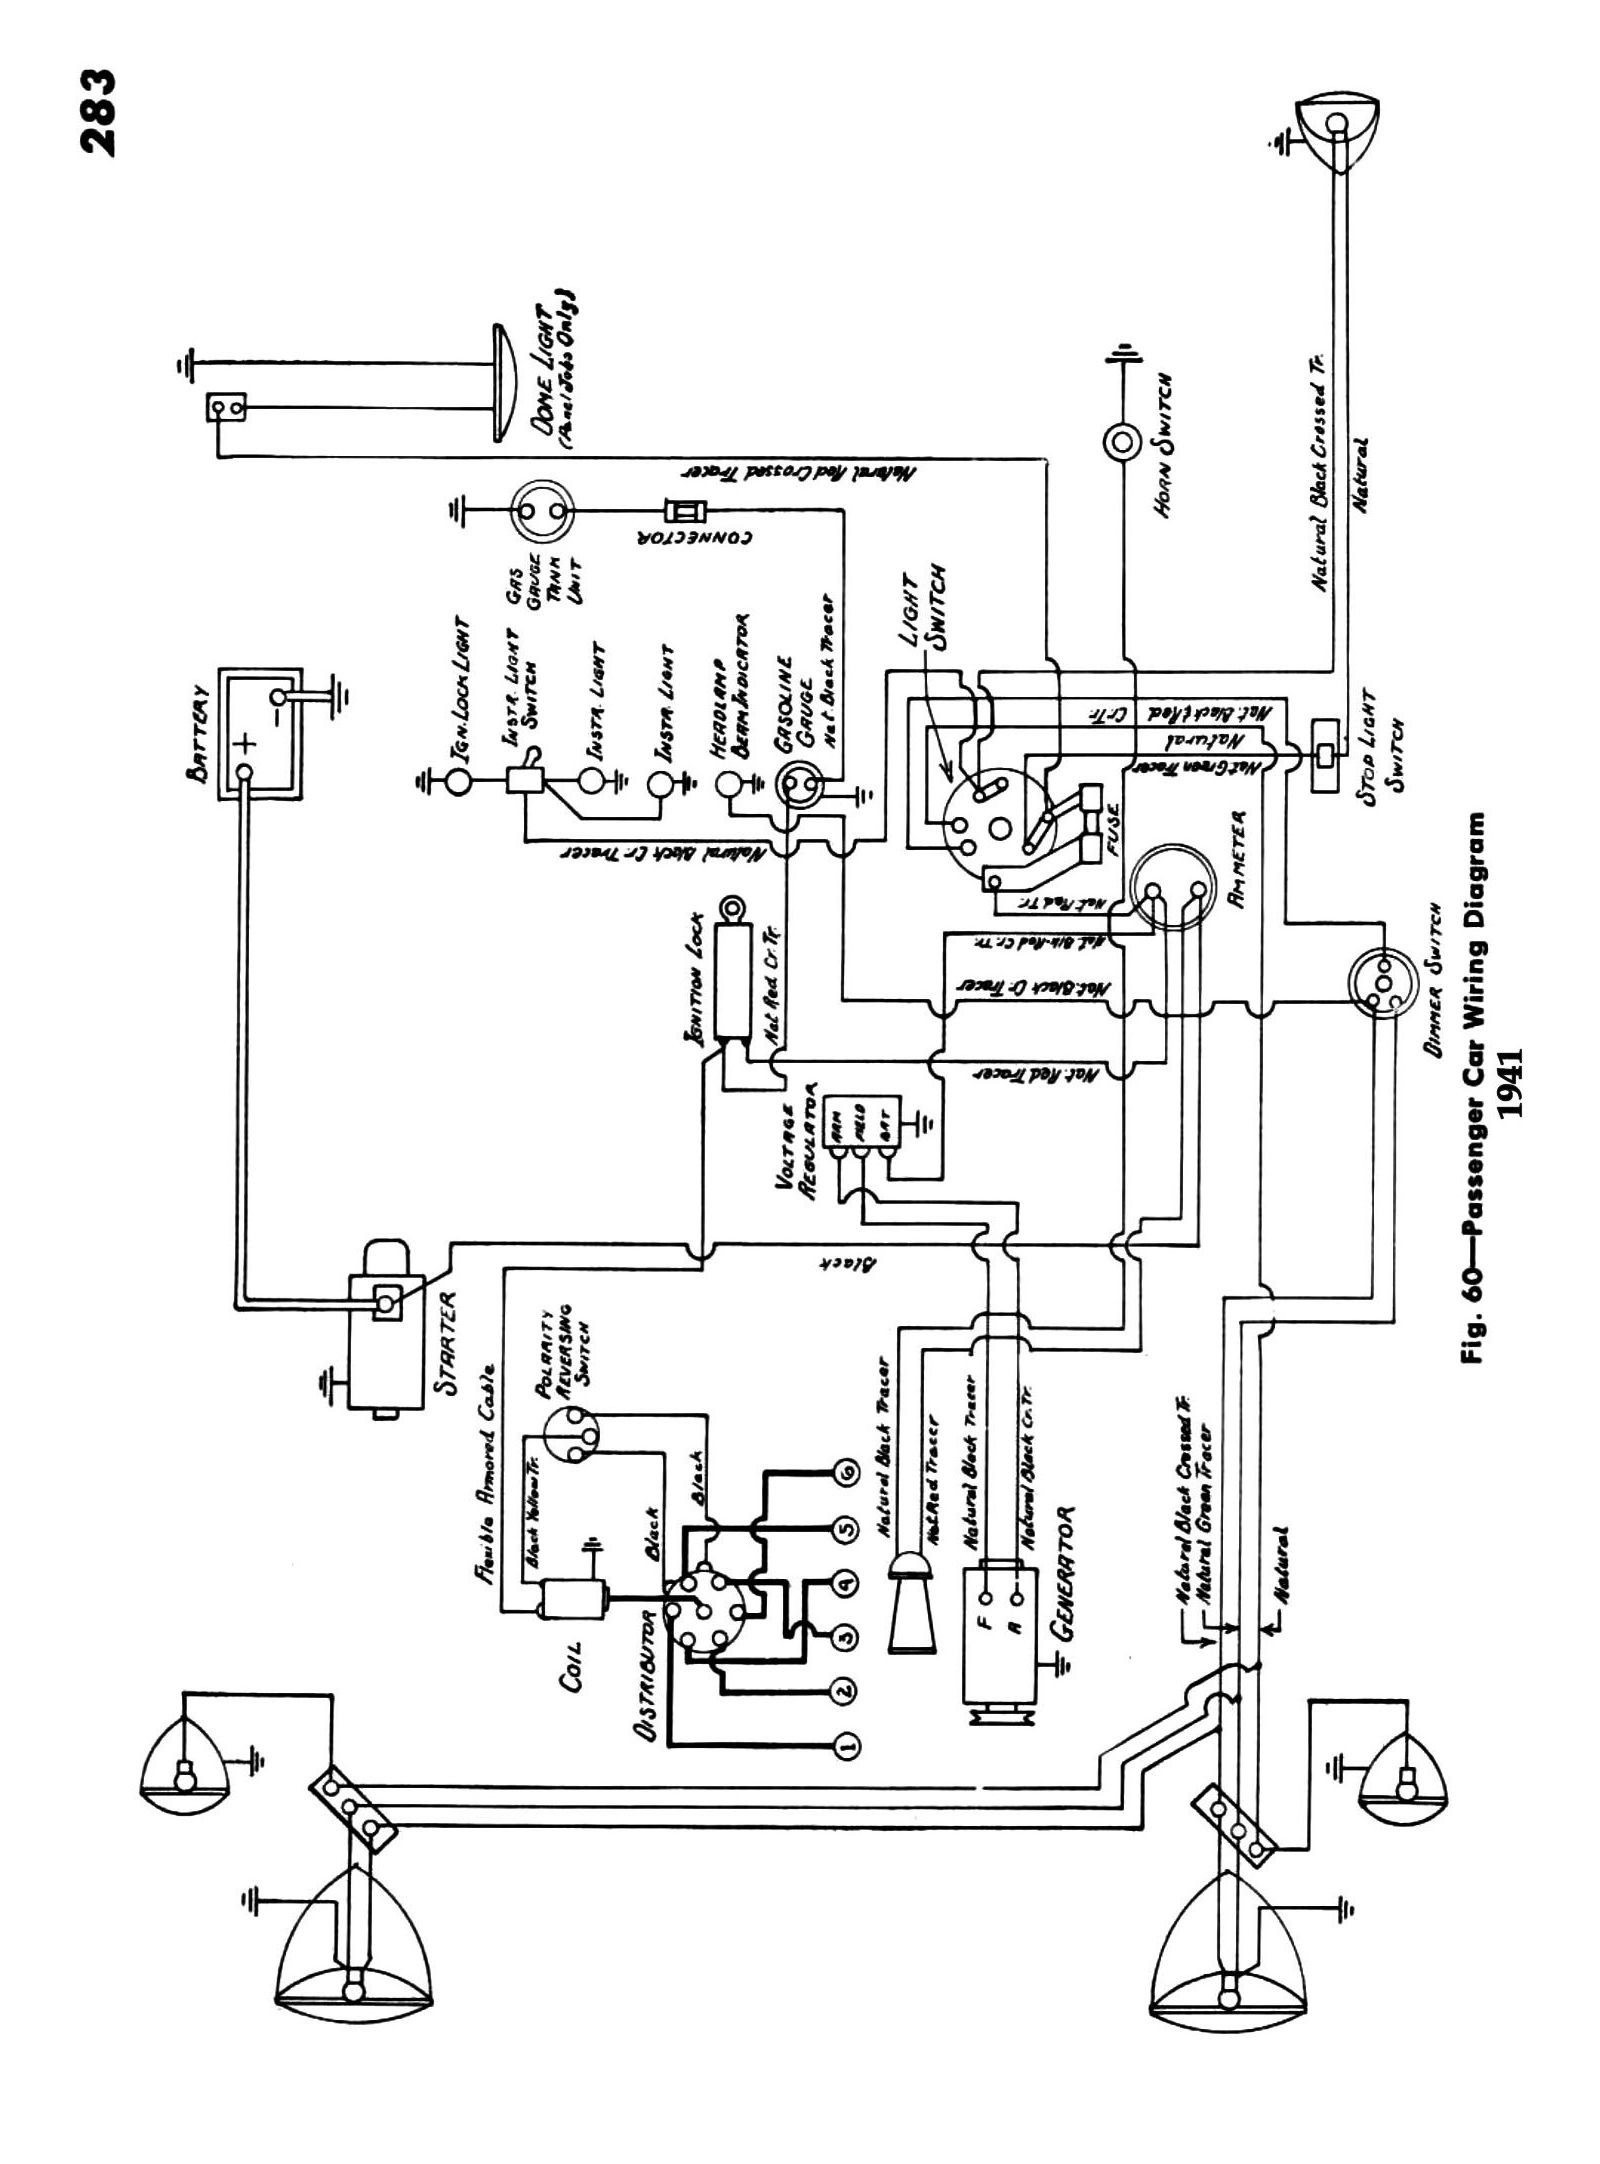 Toyota Corolla Wiring Diagram Awesome